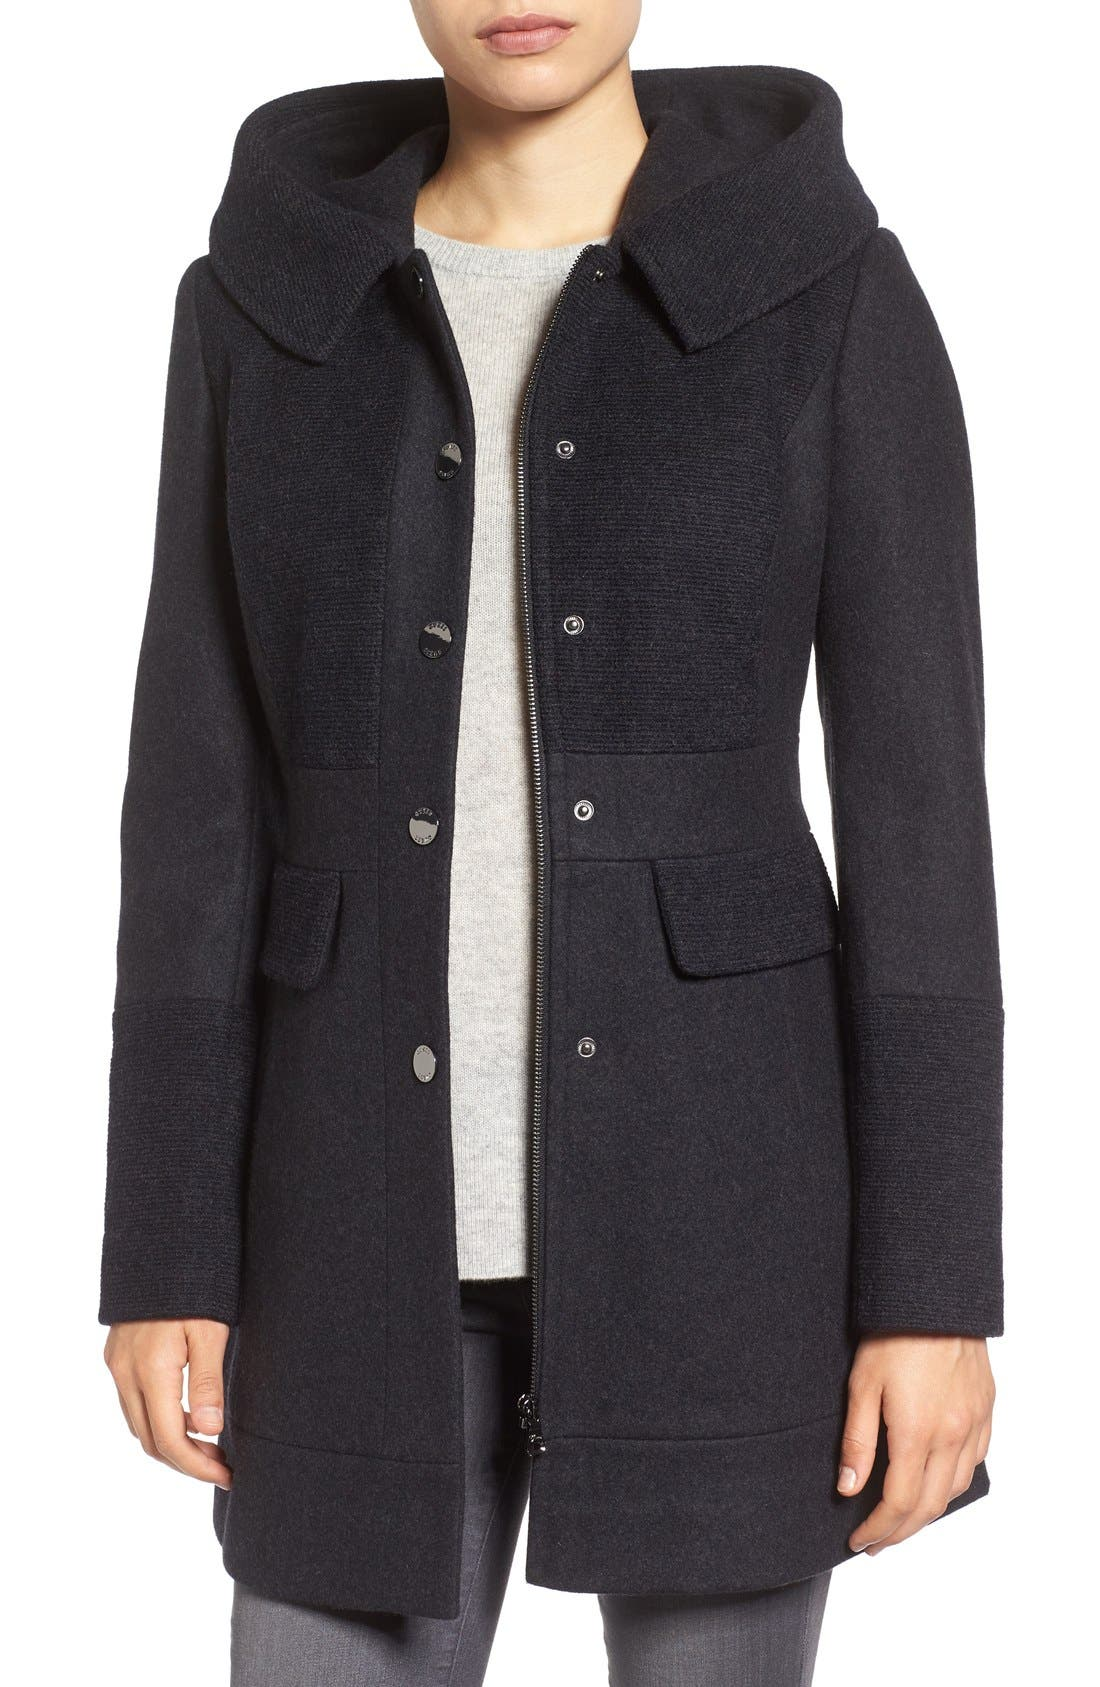 GUESS Wool Blend Hooded Coat